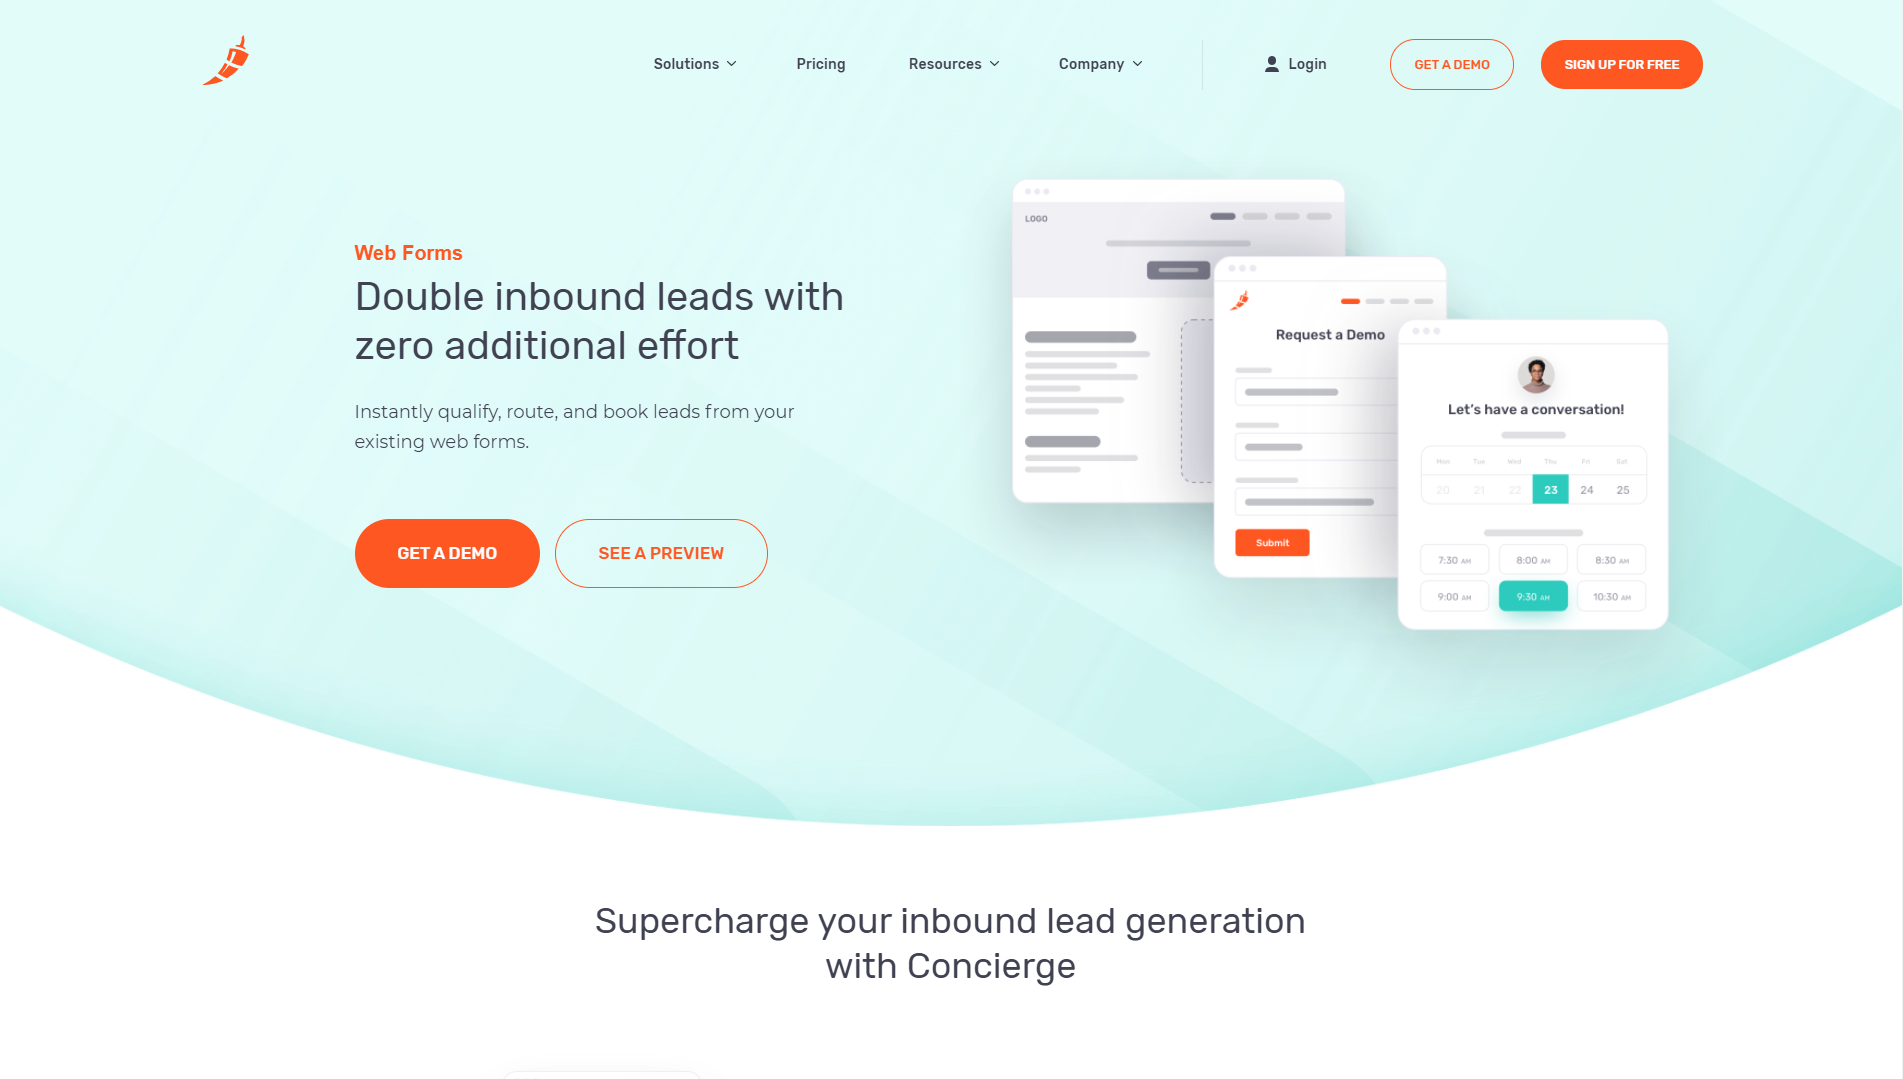 """Chili Piper's Concierge landing page with text that says """"Double inbound leads with zero additional effort"""" and """"Instantly qualify, route, and book leads from your existing web forms."""" There is a button to get a demo and a button to see a preview."""